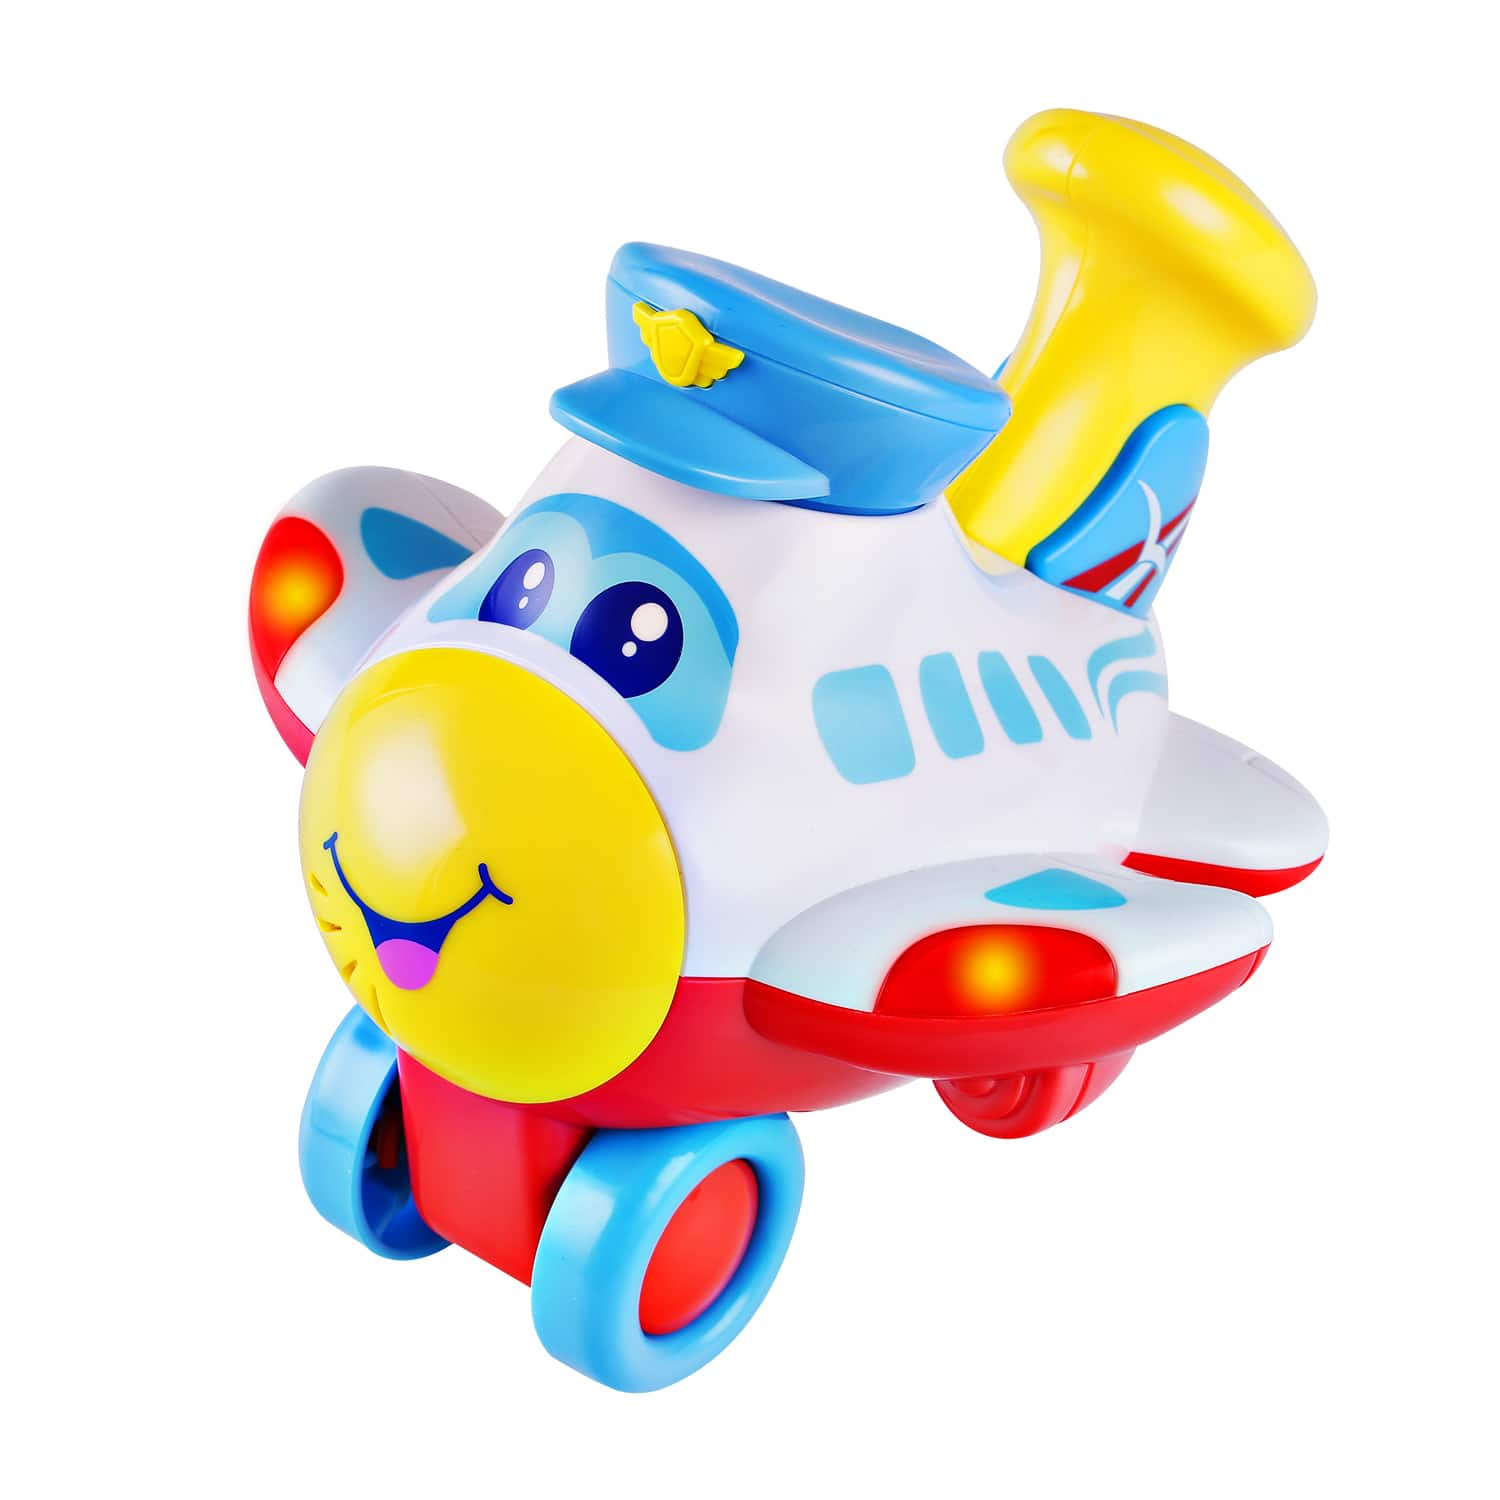 Helicopter Toy for Toddlers up tp 20% discount $12.79